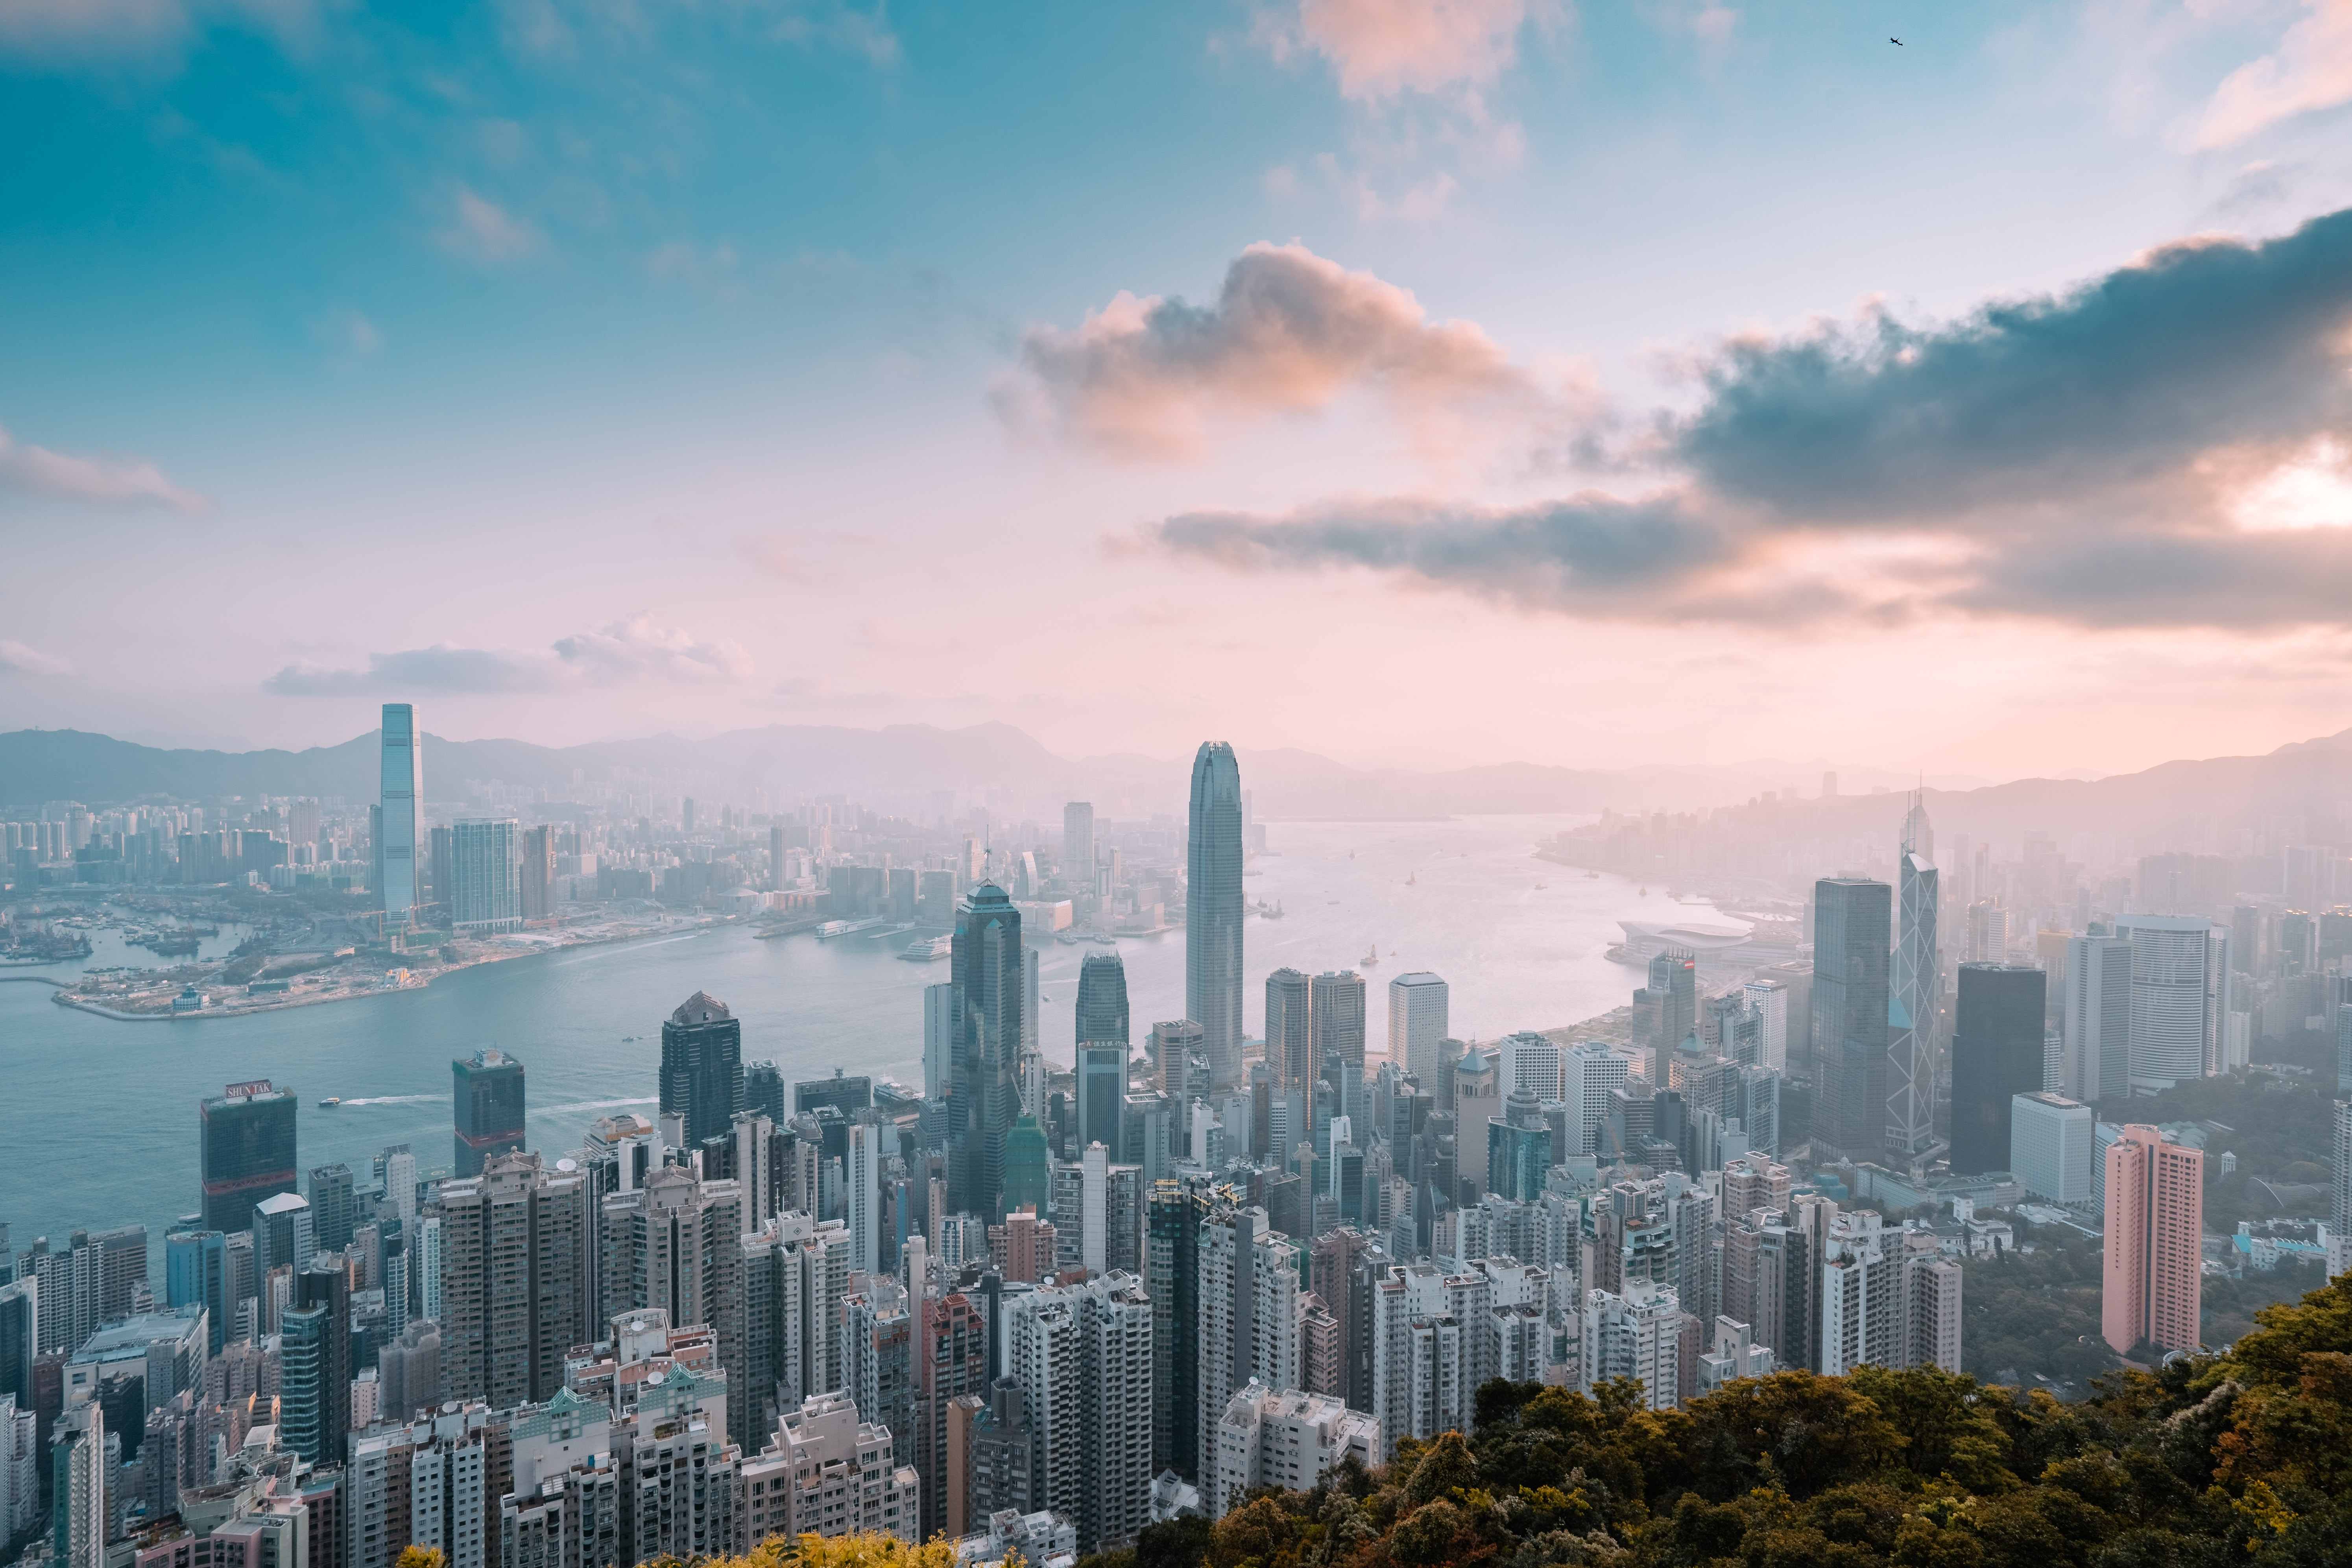 A stock photo of the Hong Kong skyline with an interesting blue and pink daytime sky